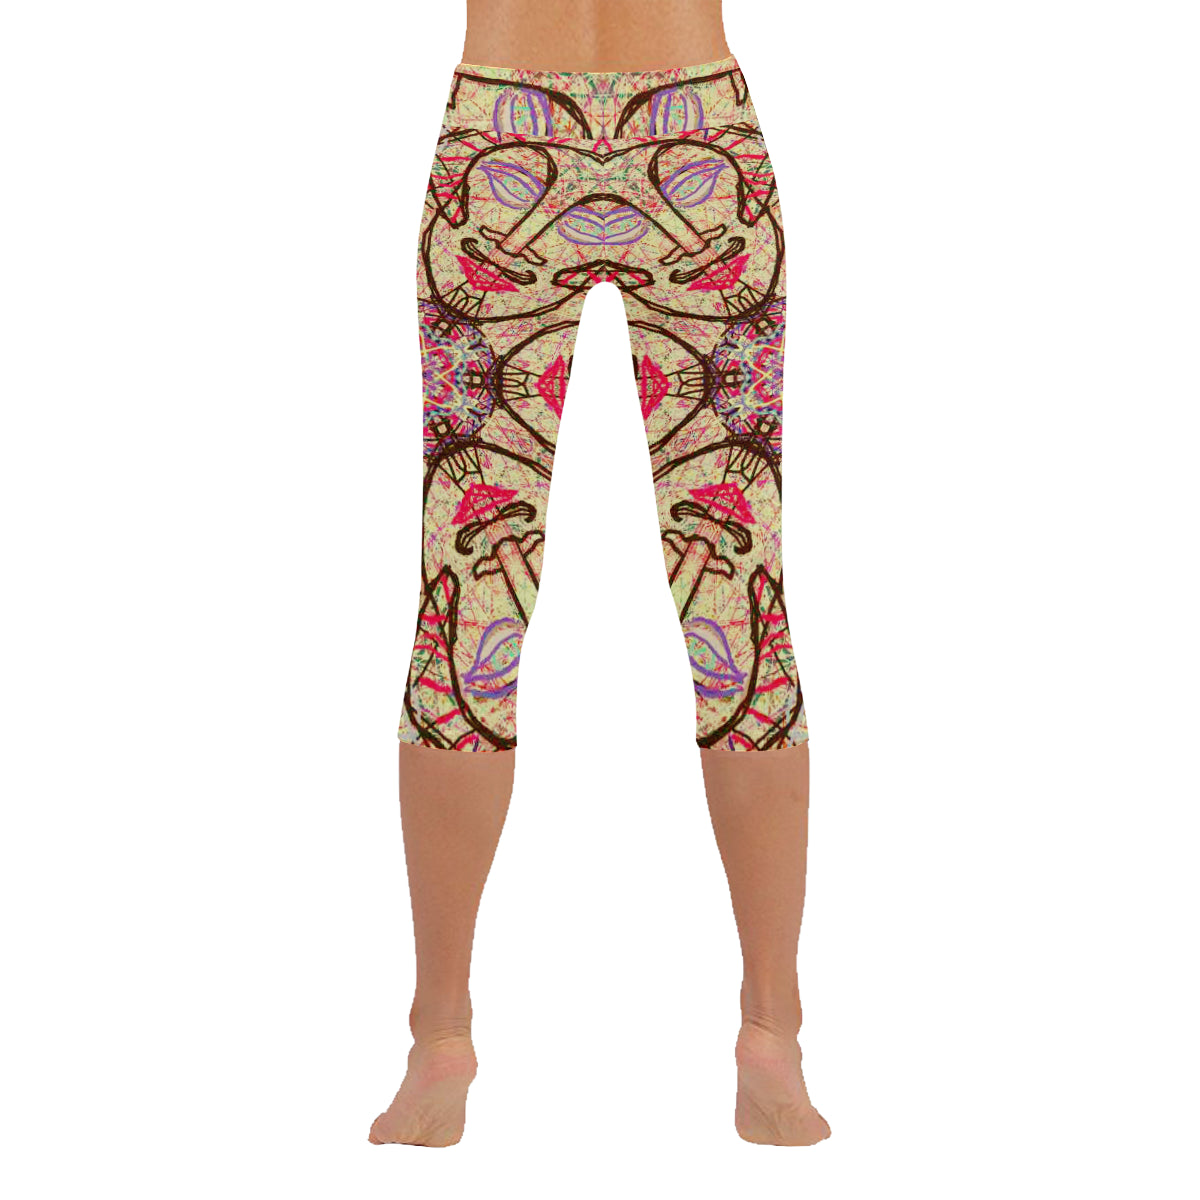 Thleudron Mystic Low Rise Capri Leggings (Invisible Stitch) (Model L08) - Thleudron